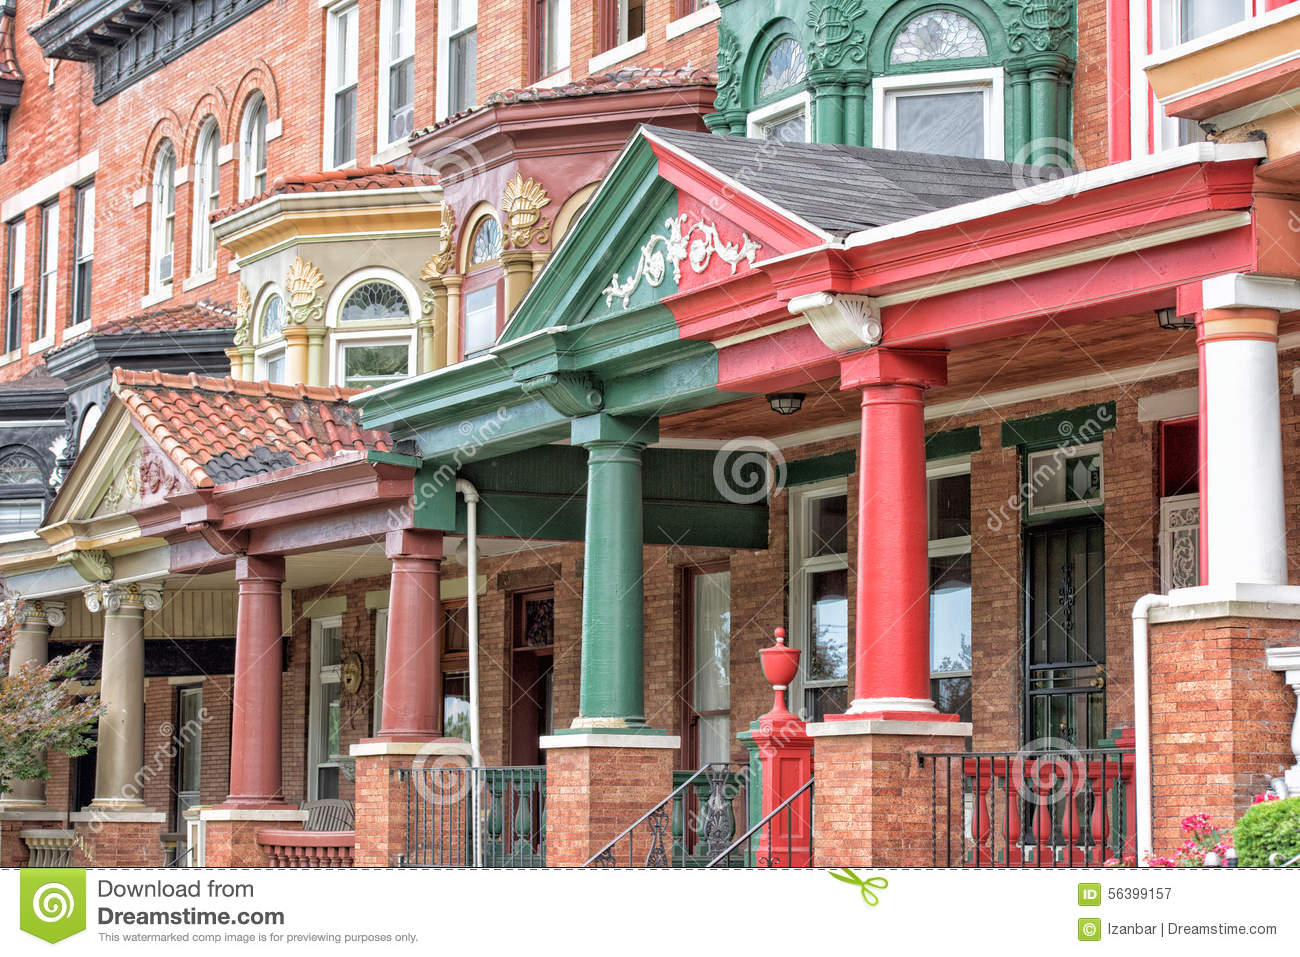 Baltimore druid hill old house window stock photo image for Bow window construction detail